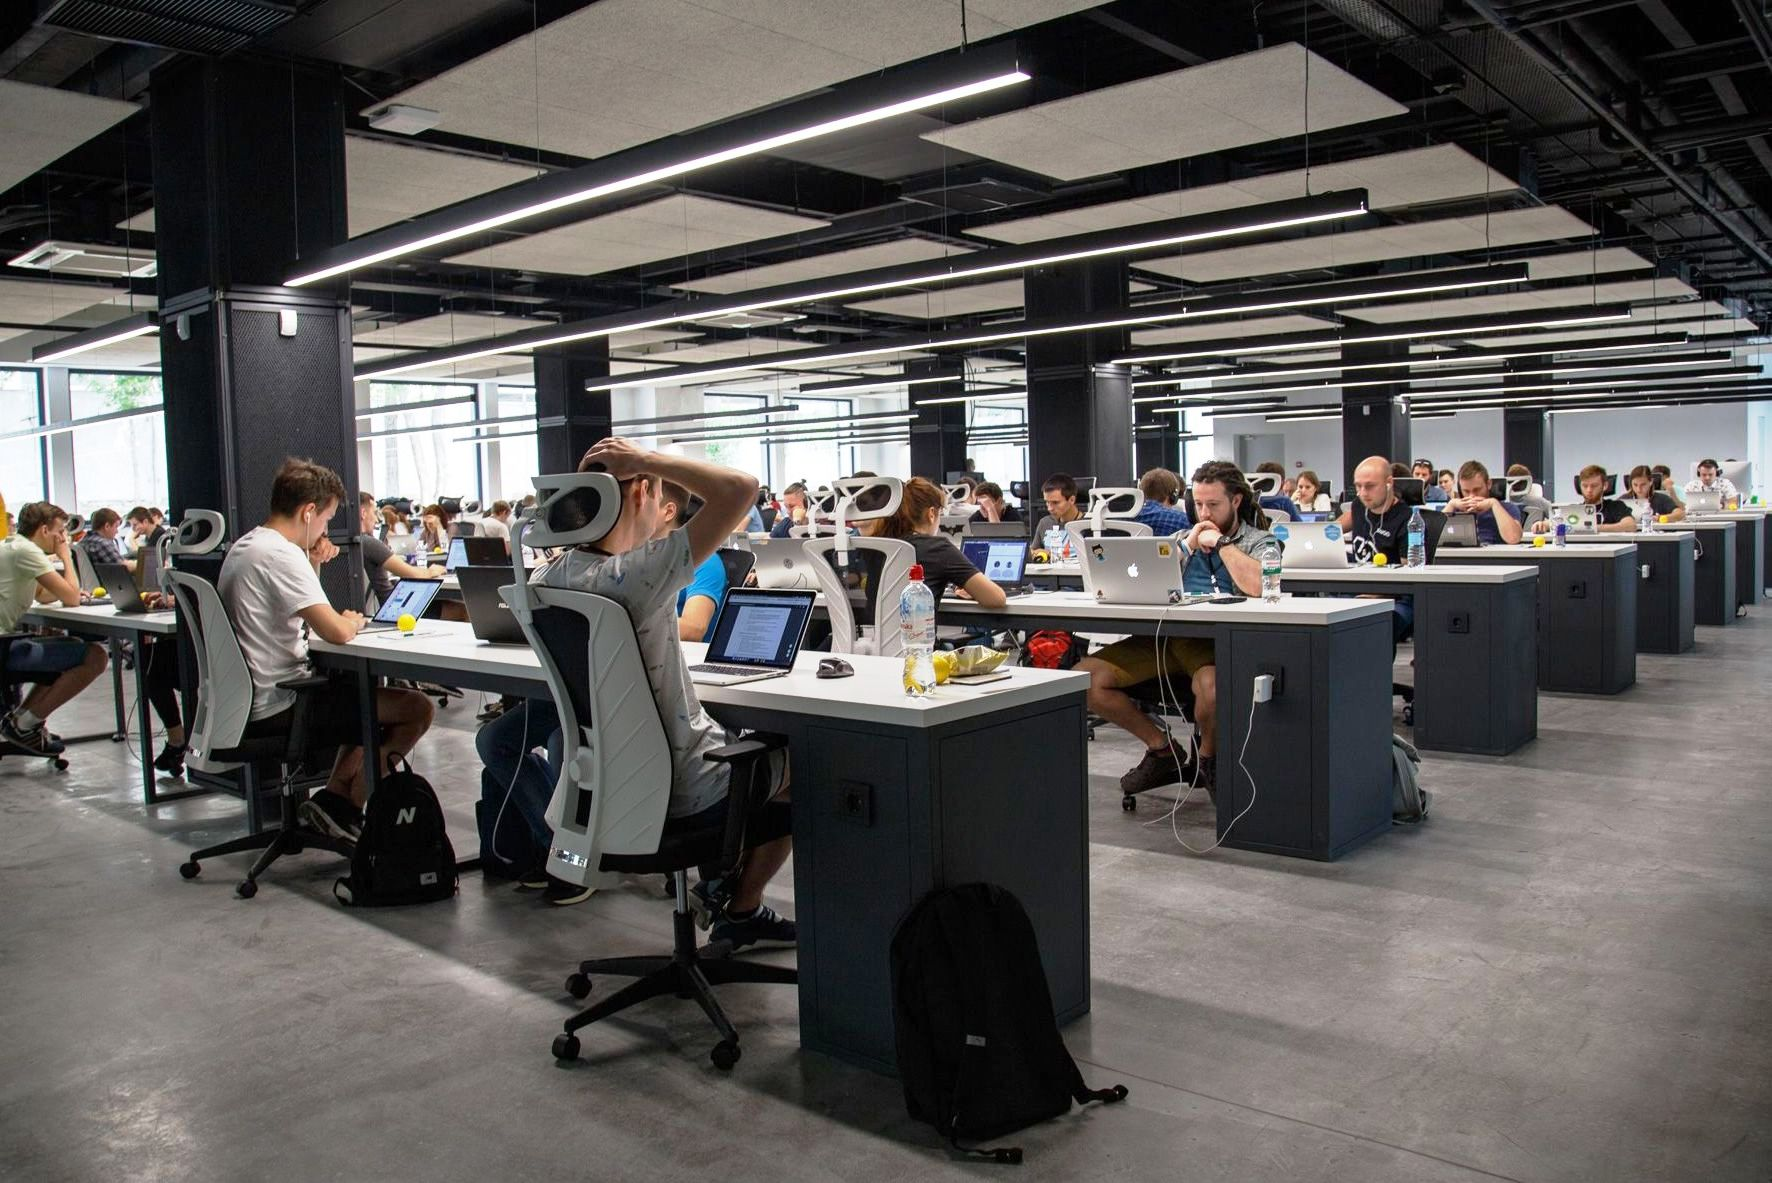 Open office concepts: Employers love 'em … employees hate 'em